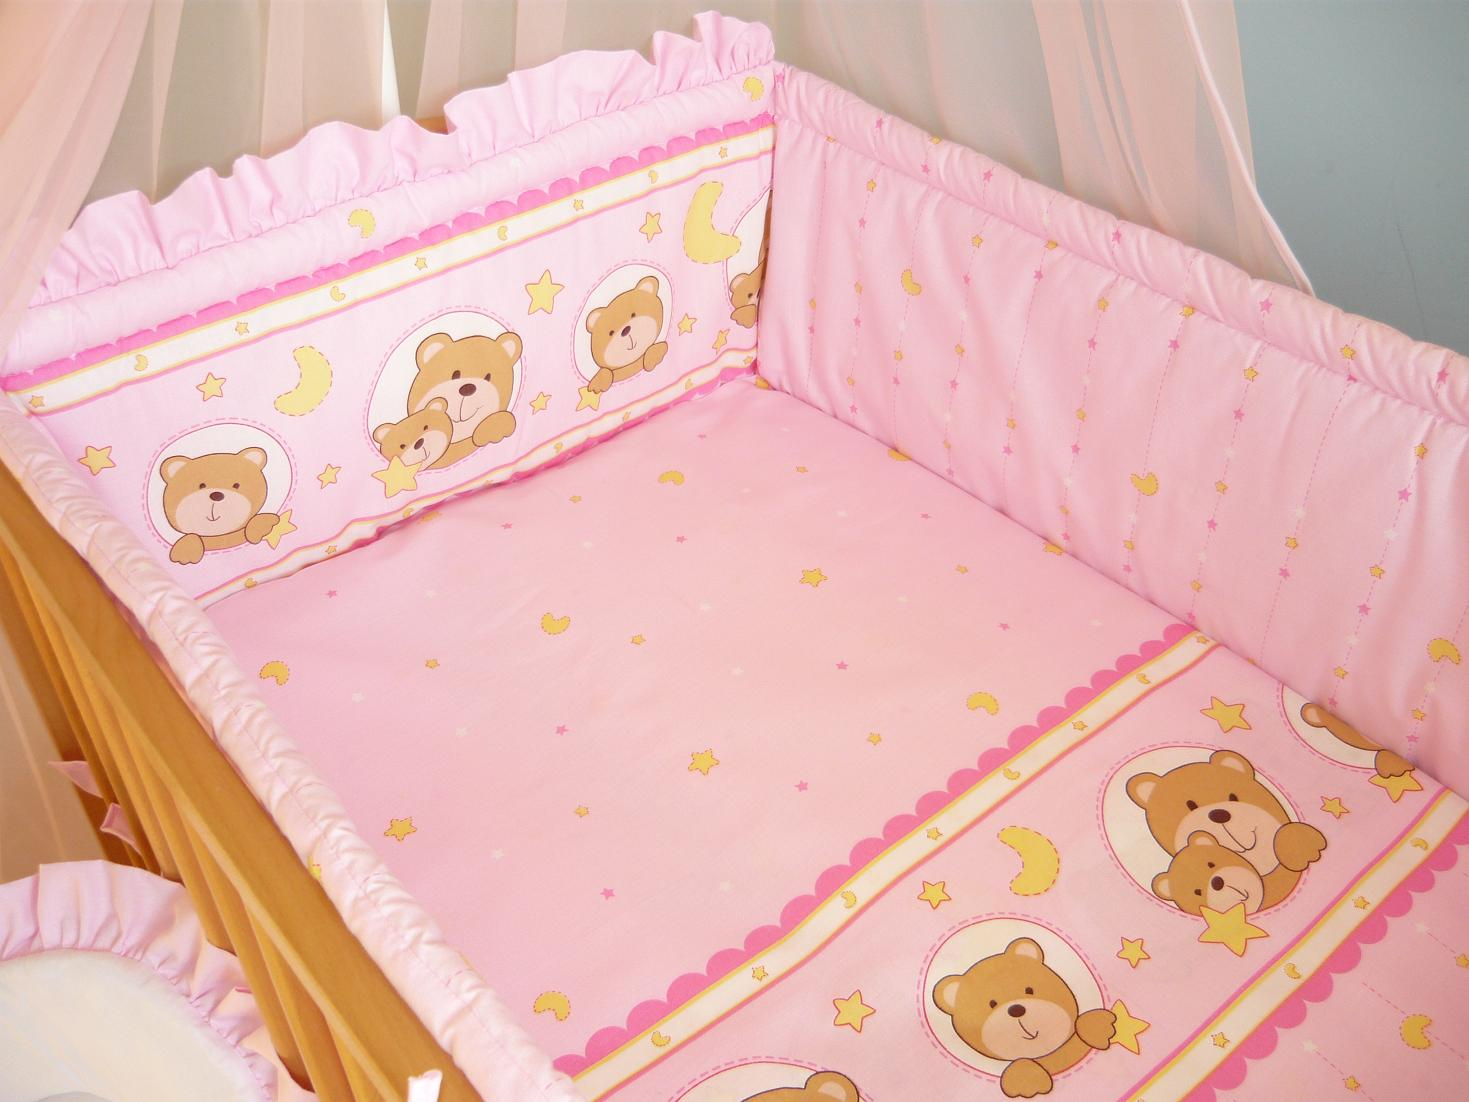 bettw sche baby bettset kinderbettw sche 100x135cm 100 baumwolle neu motive ebay. Black Bedroom Furniture Sets. Home Design Ideas